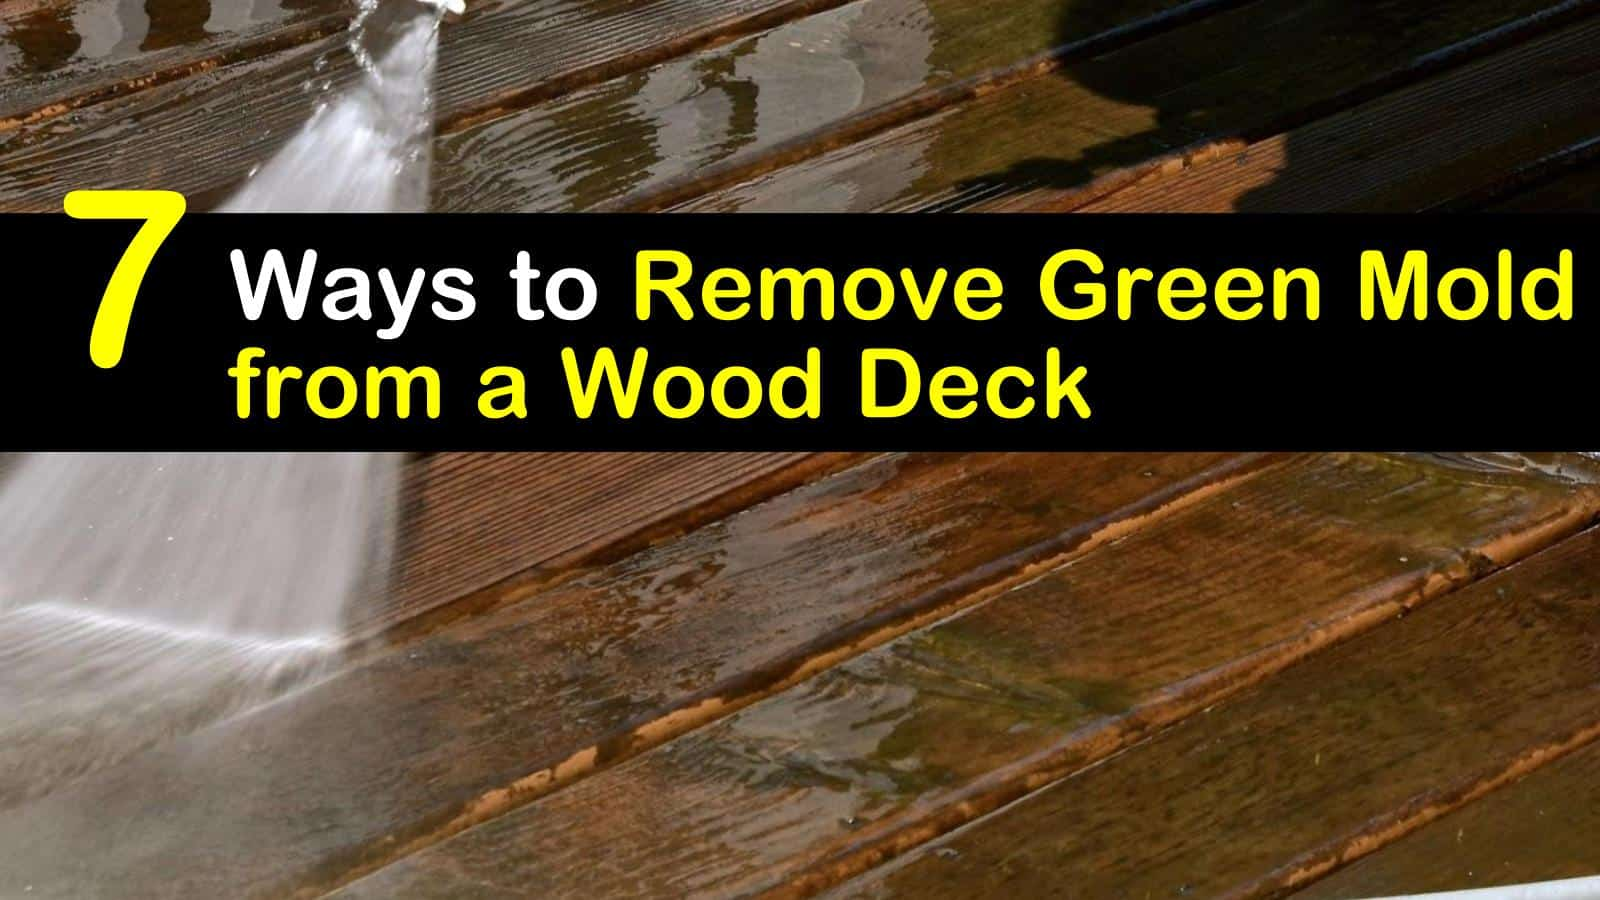 how to remove green mold from a wood deck titleimg1